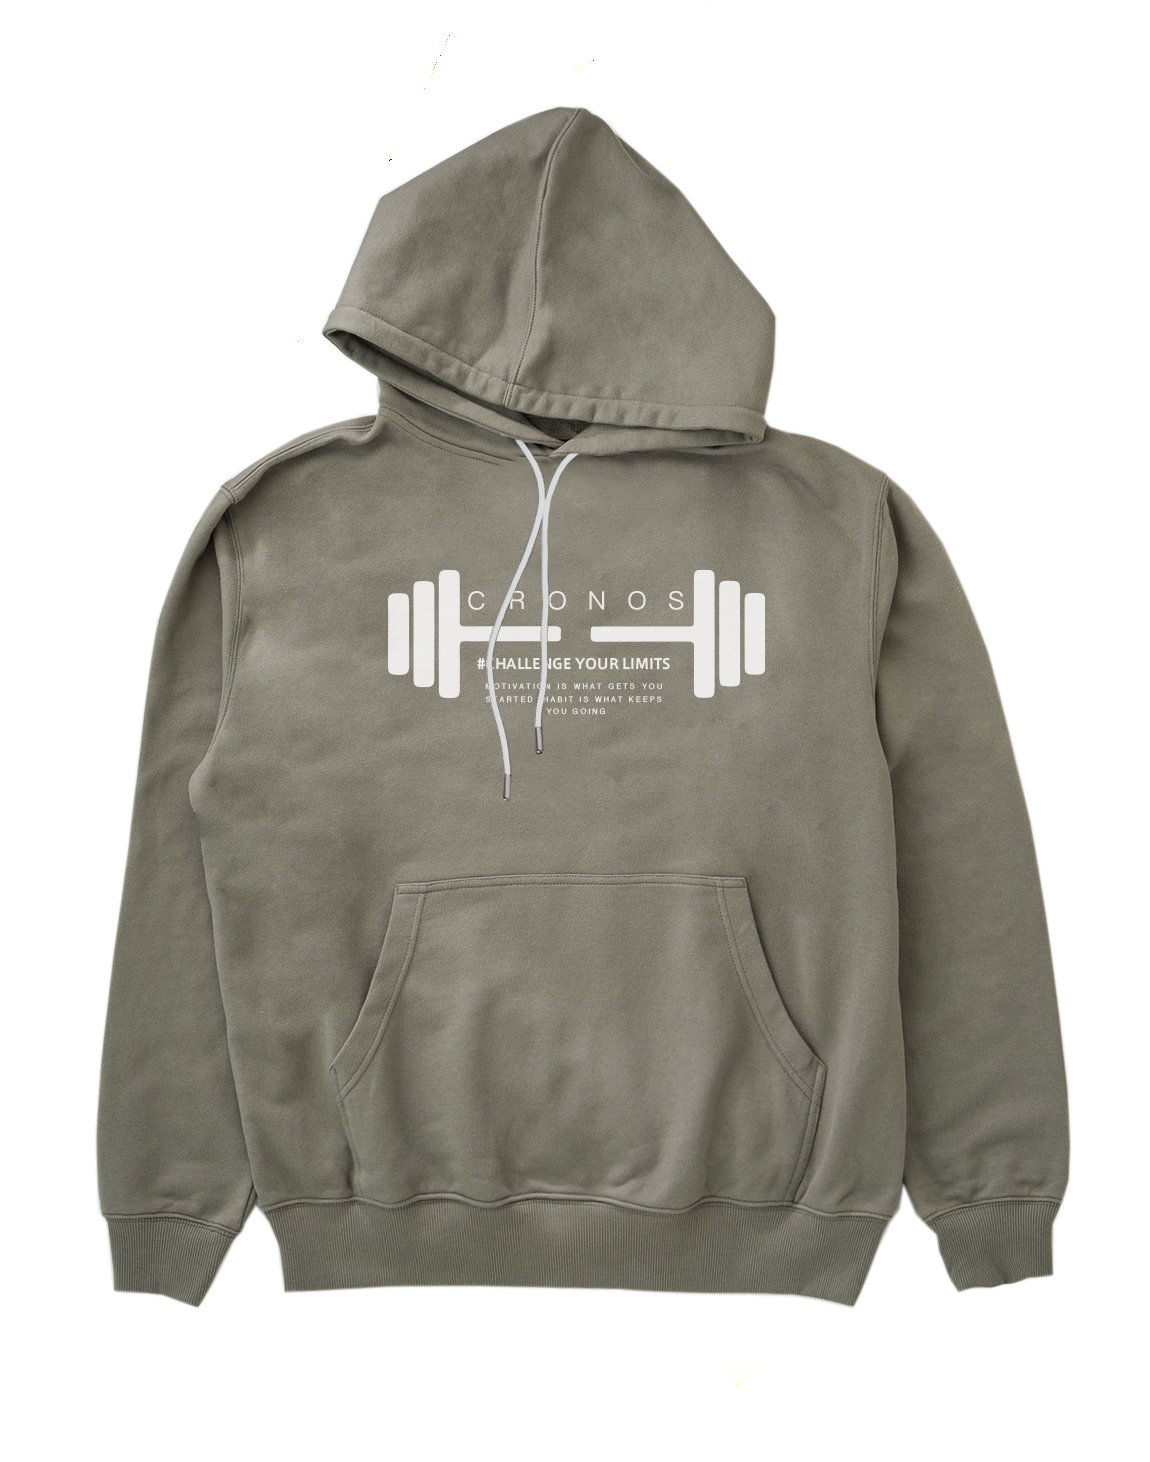 <img class='new_mark_img1' src='https://img.shop-pro.jp/img/new/icons55.gif' style='border:none;display:inline;margin:0px;padding:0px;width:auto;' />CRONOS DUMBBELL LOGO HOODY【GRAY】